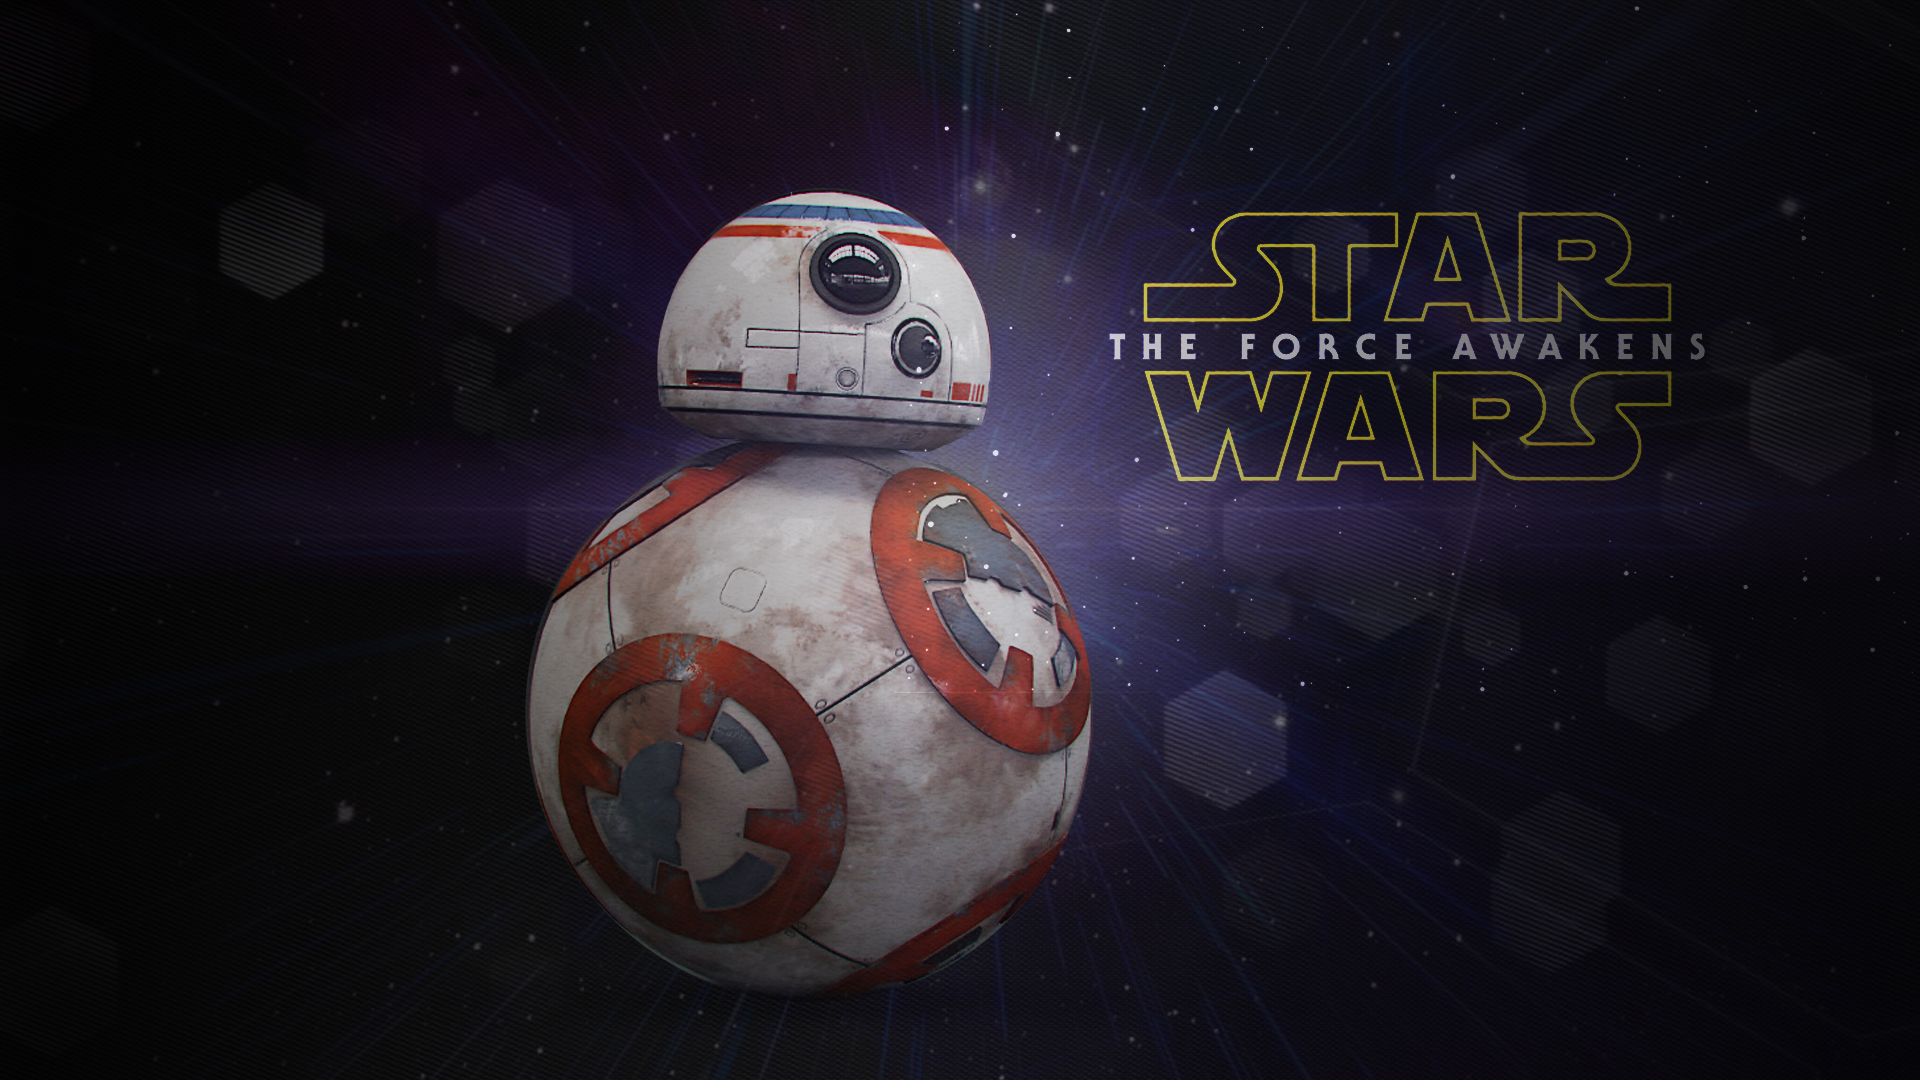 bb8 wallpaper hd - photo #3